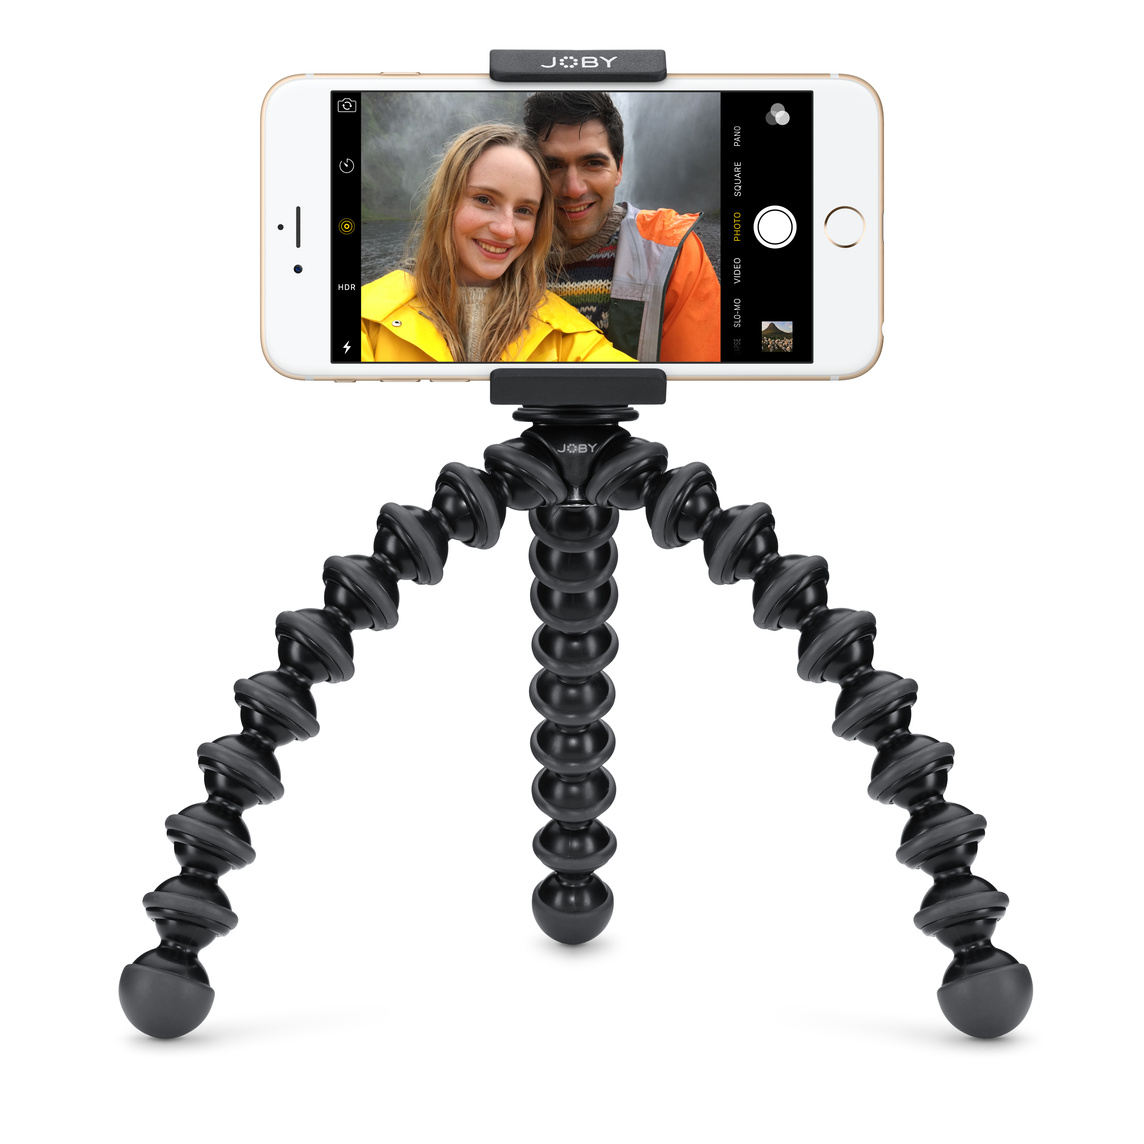 buy popular e6b0f ced7a Joby GripTight GorillaPod Stand PRO for iPhone